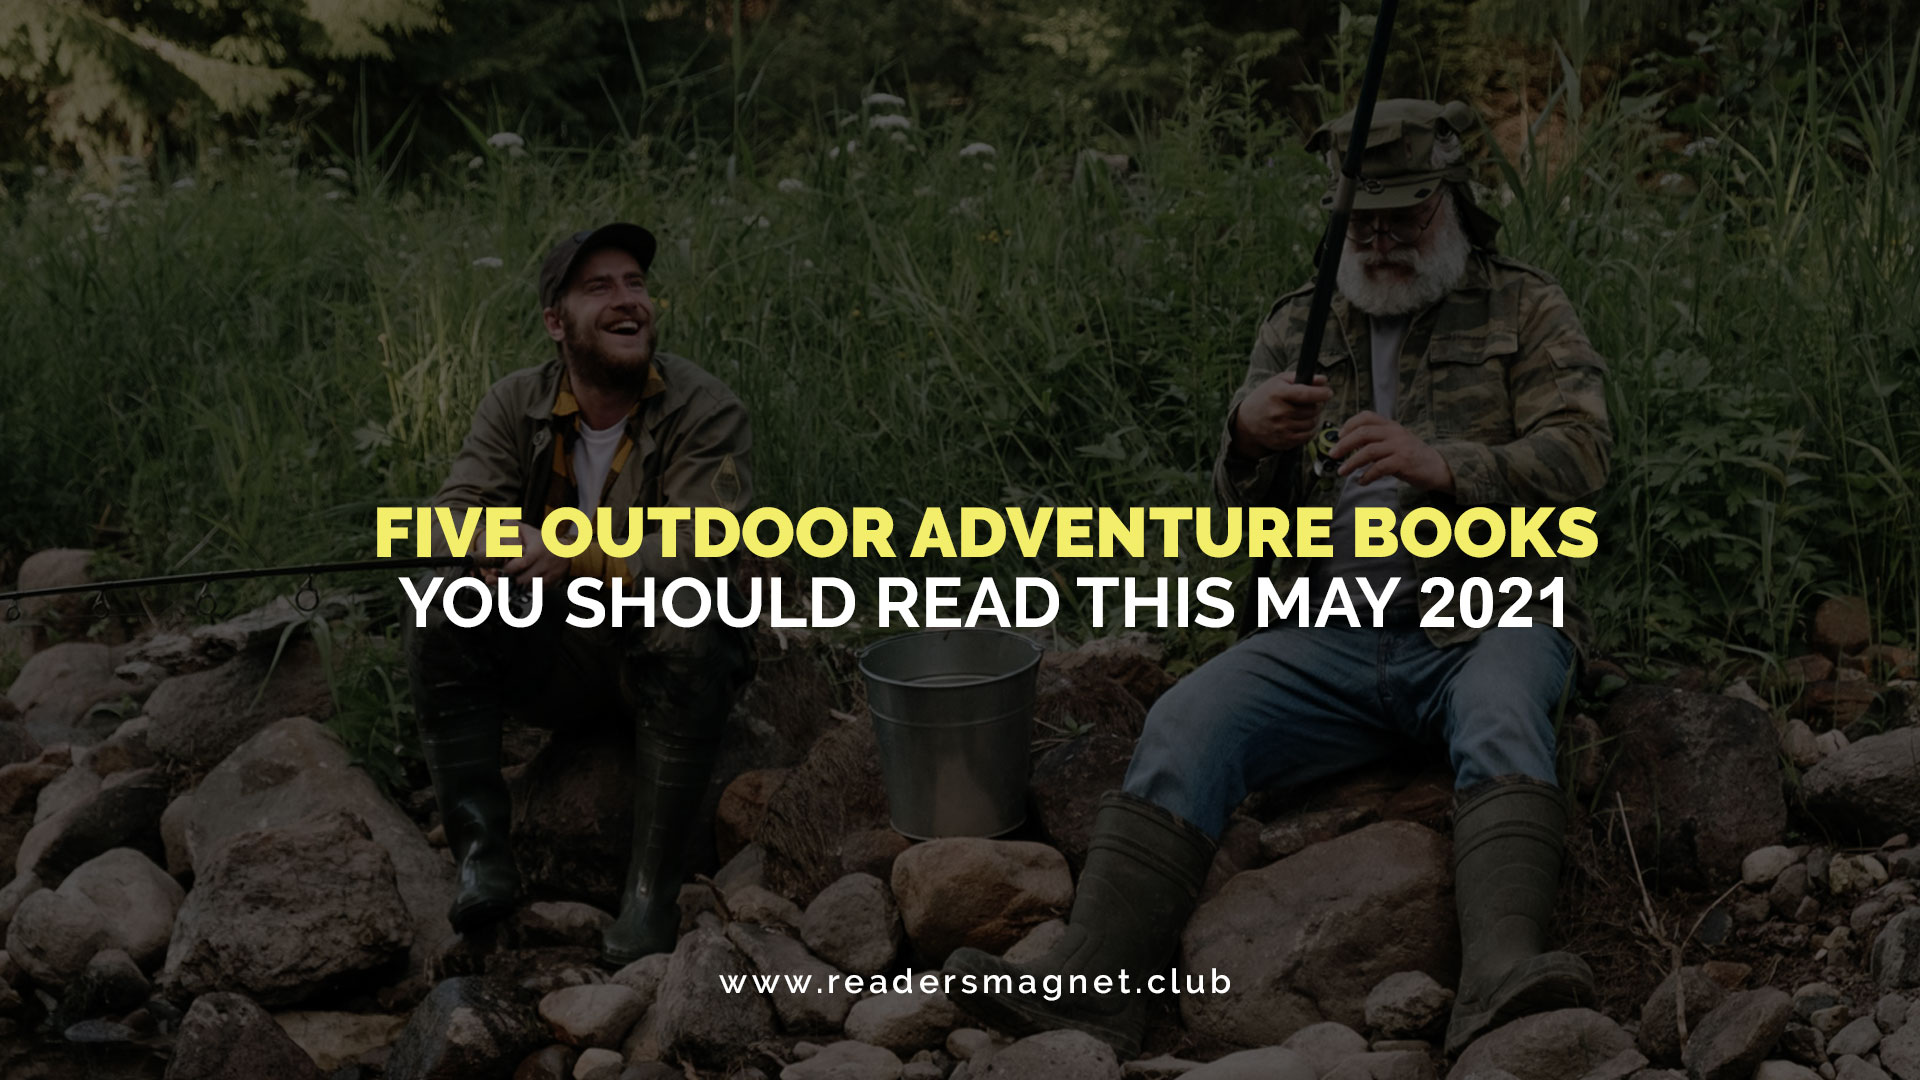 Five-Outdoor-Adventure-Books-You-Should-Read-This-May-2021 banner